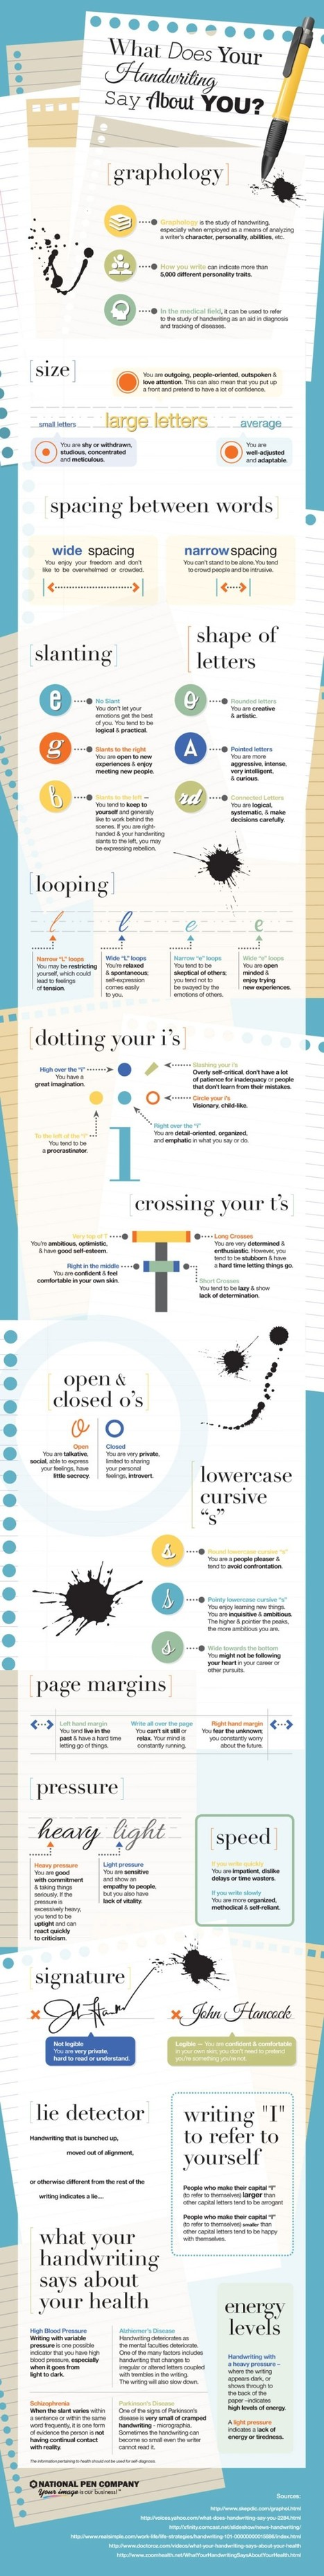 What Your Handwriting Says About You [Infographic] | Soup for thought | Scoop.it